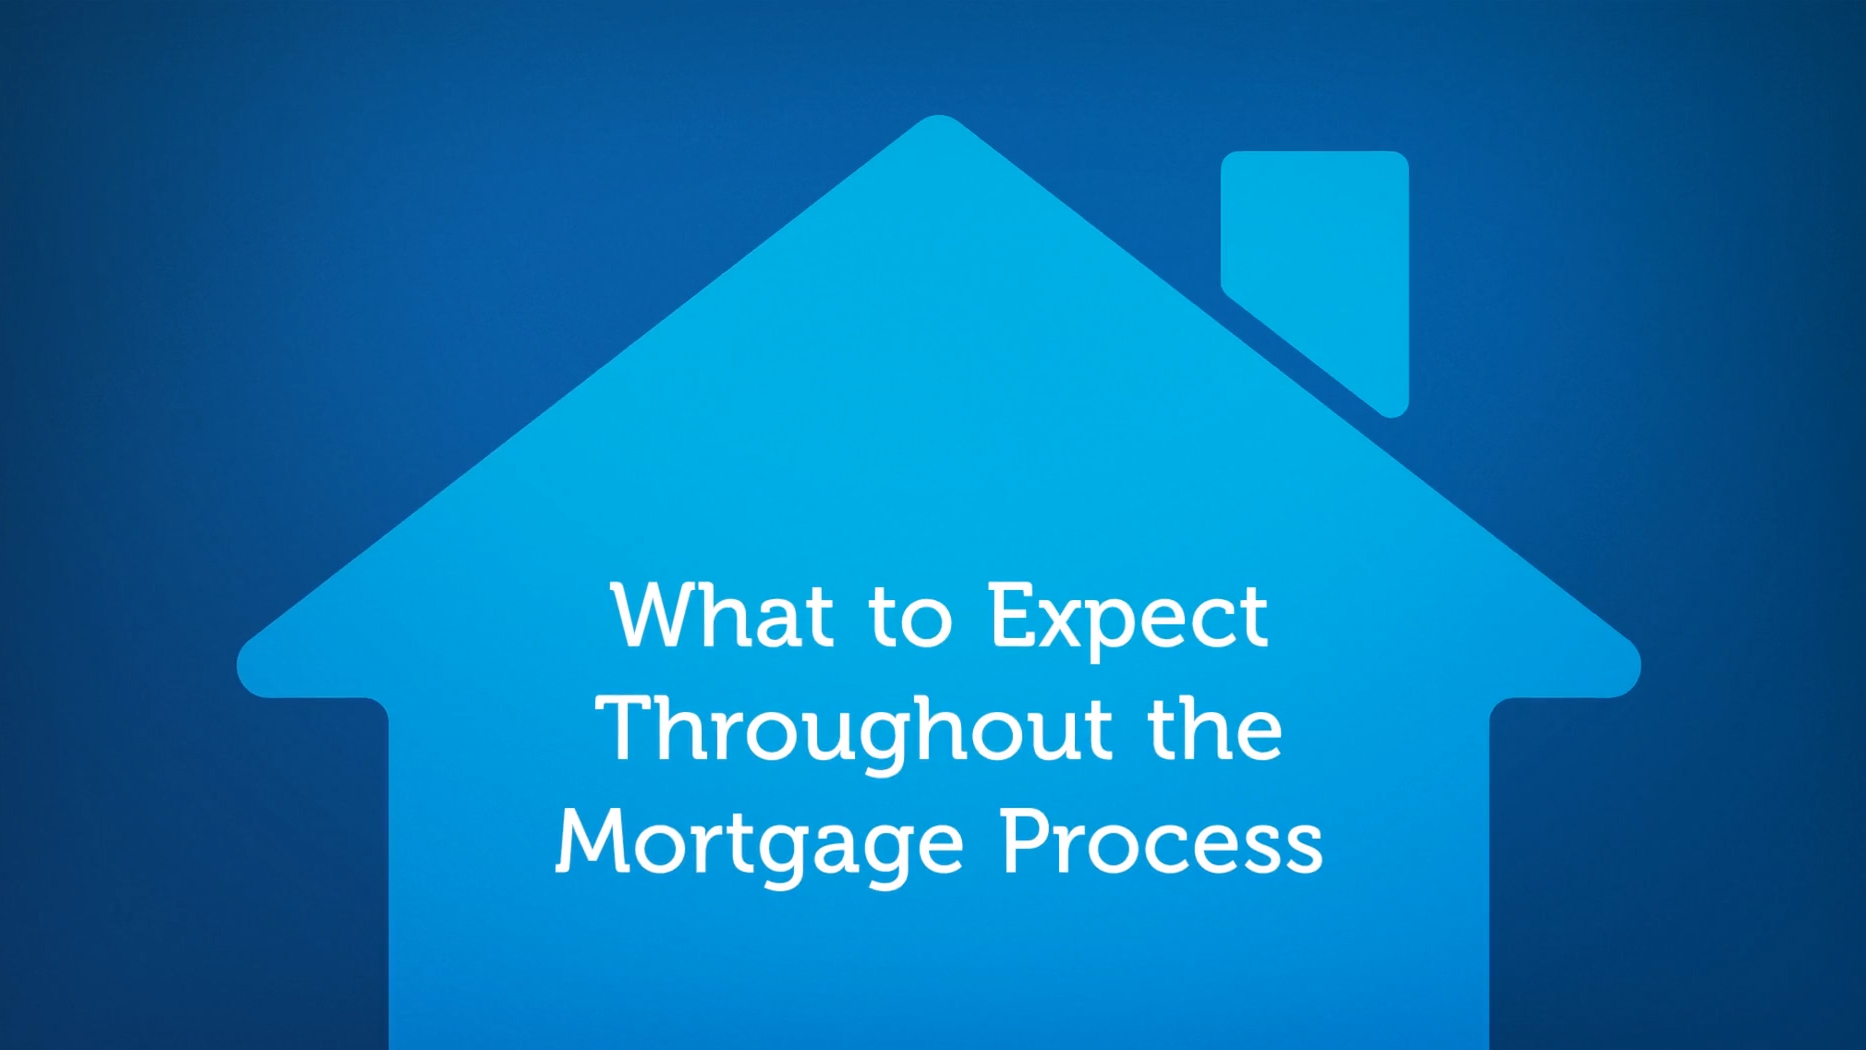 What to Expect Throughout the Mortgage Process